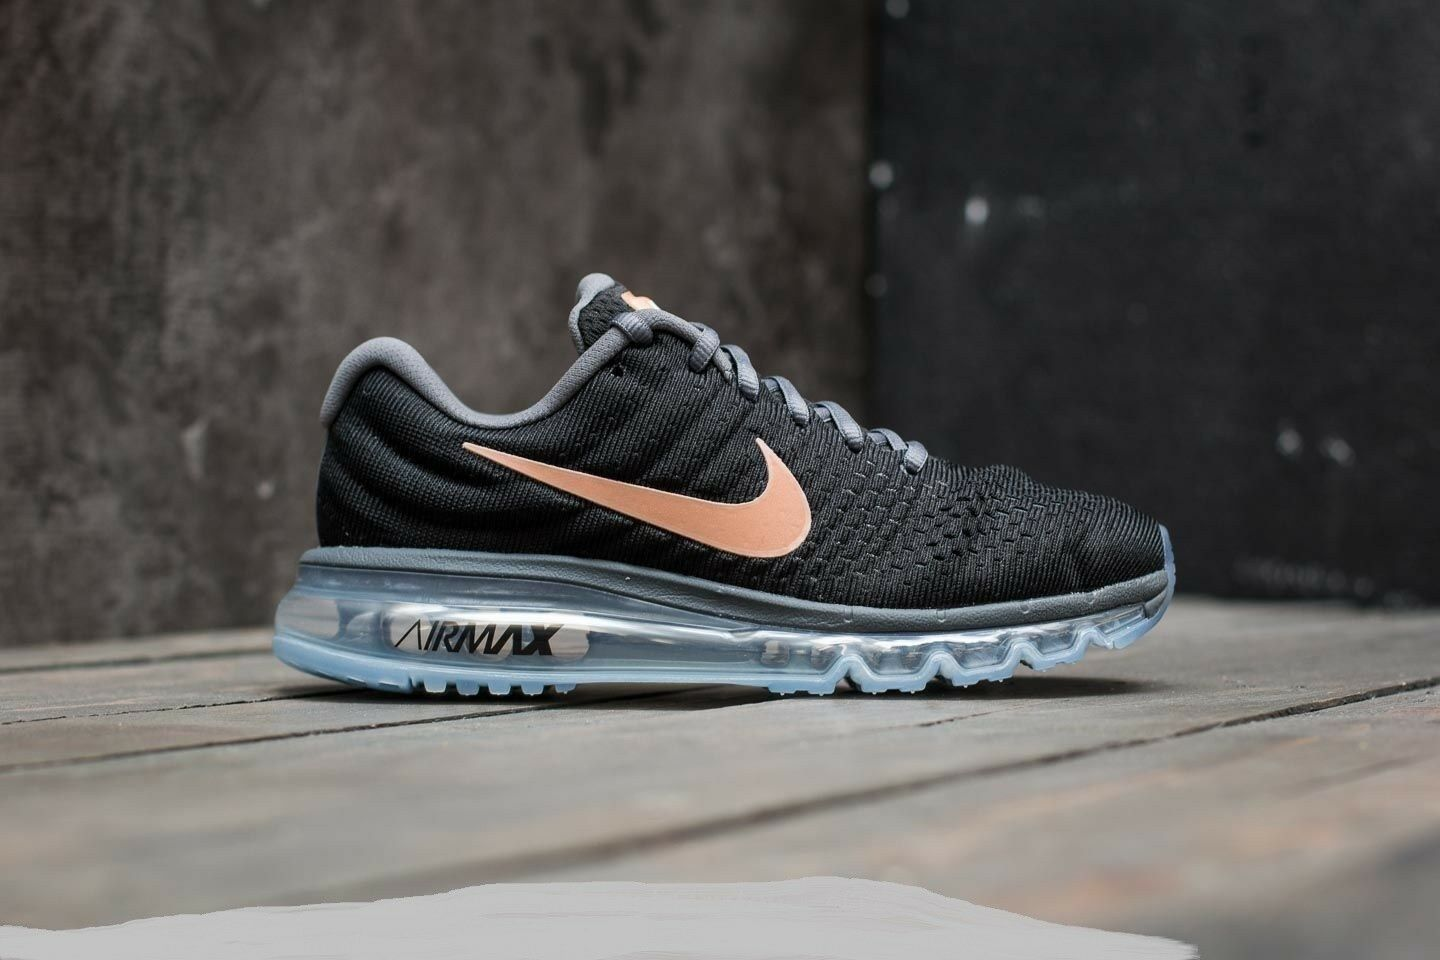 NIKE AIR MAX 2017 849560 008 Black Metallic Red Bronze Wmn Sz 10